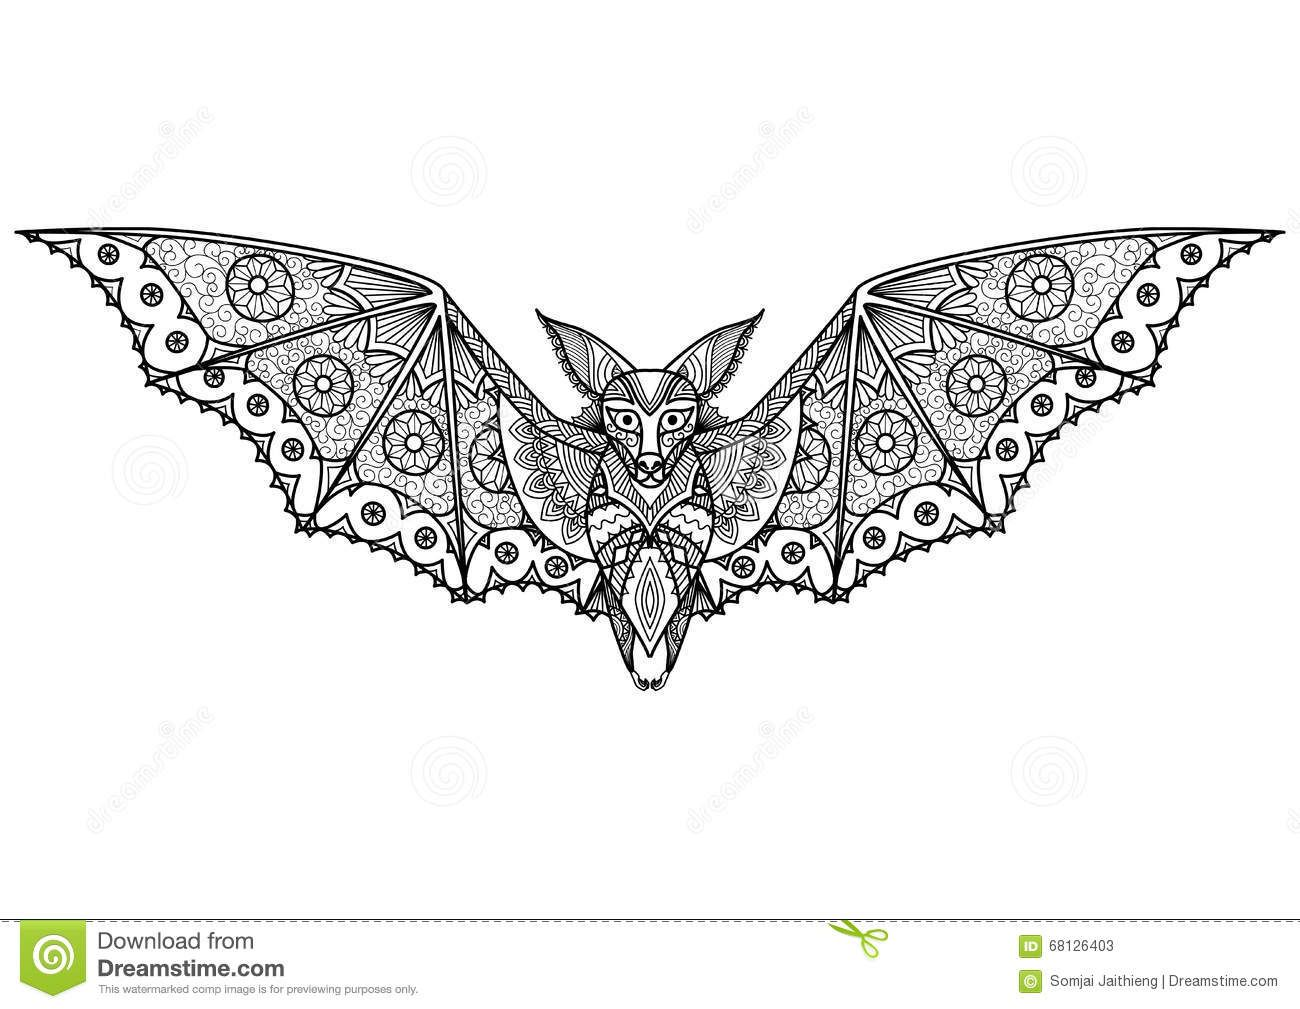 Bat zentangle illustration about coloring animal abstract adult anti drawn